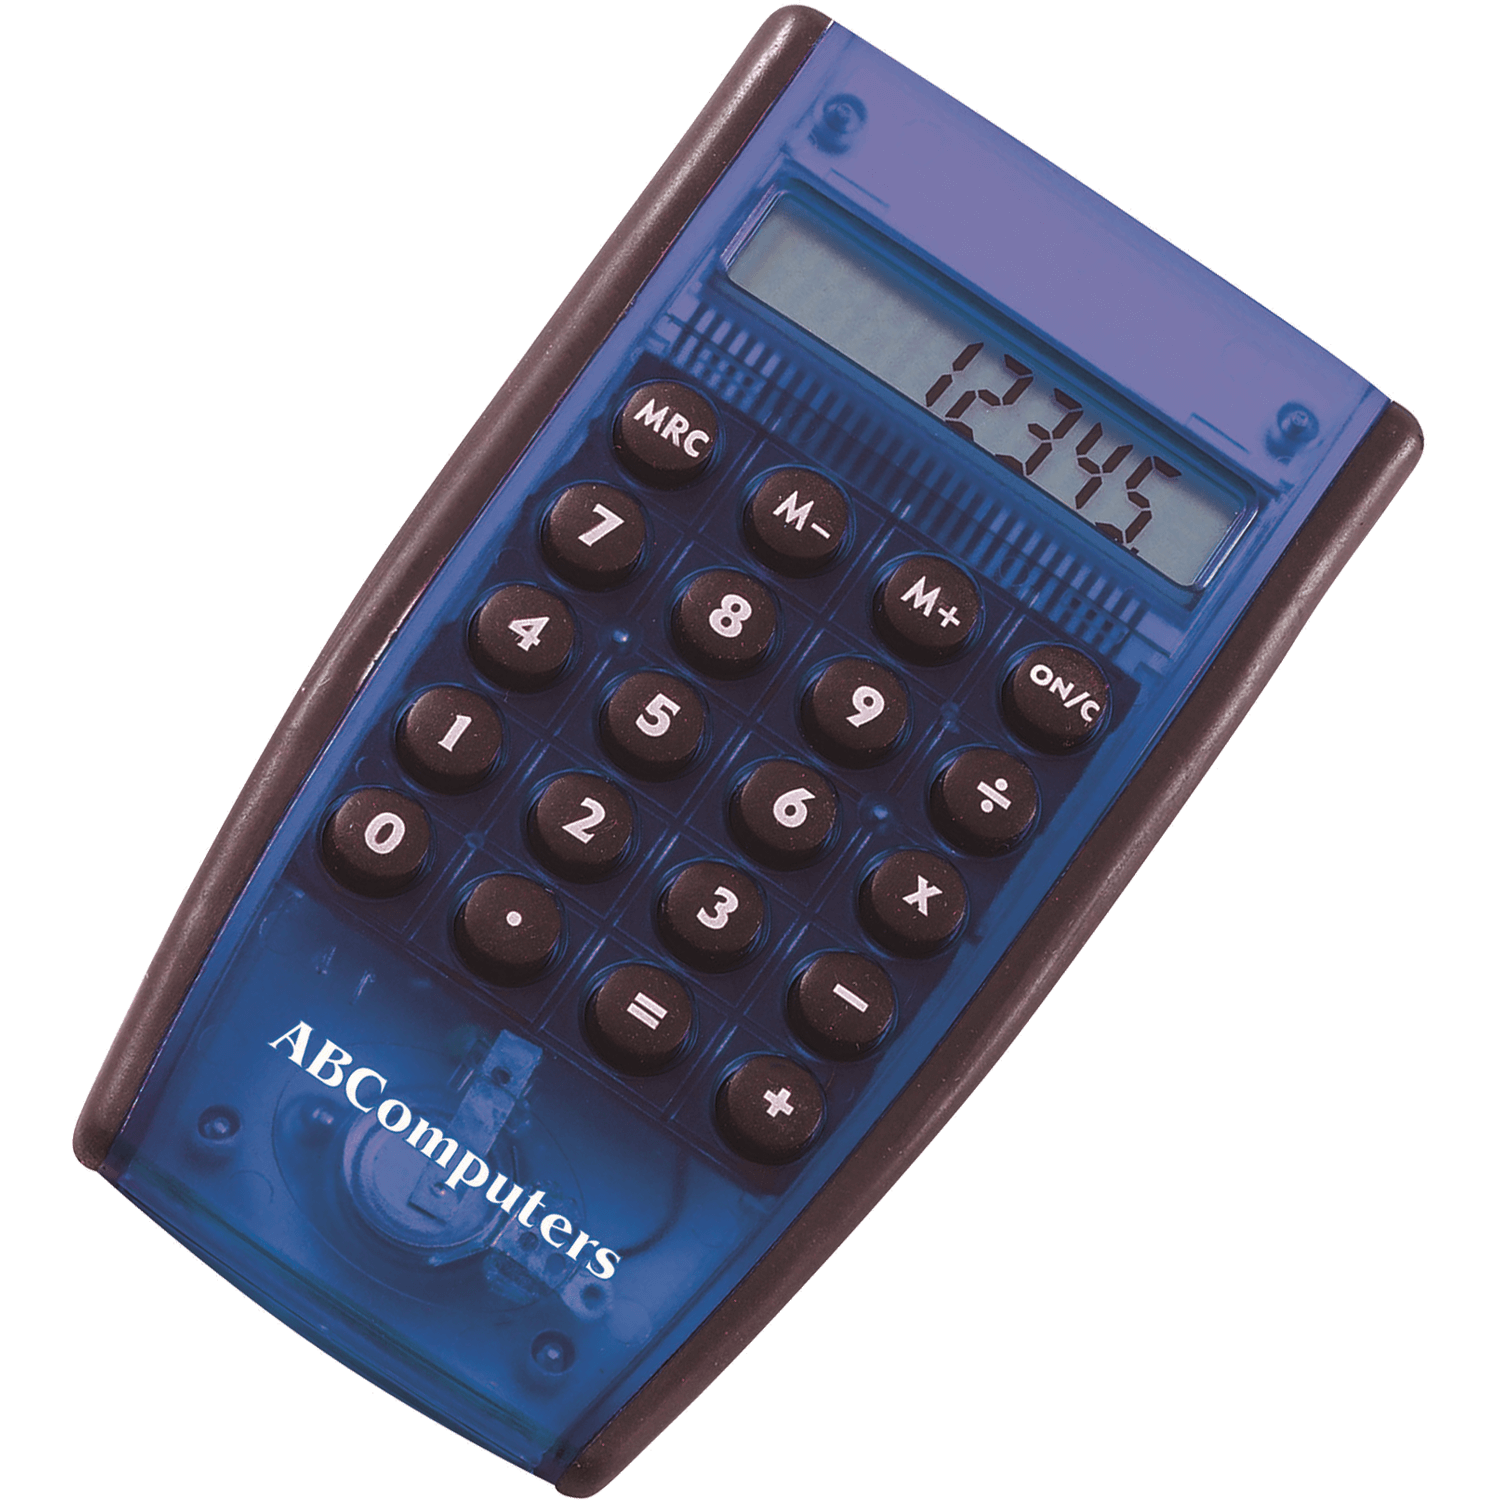 Ghost Calculator